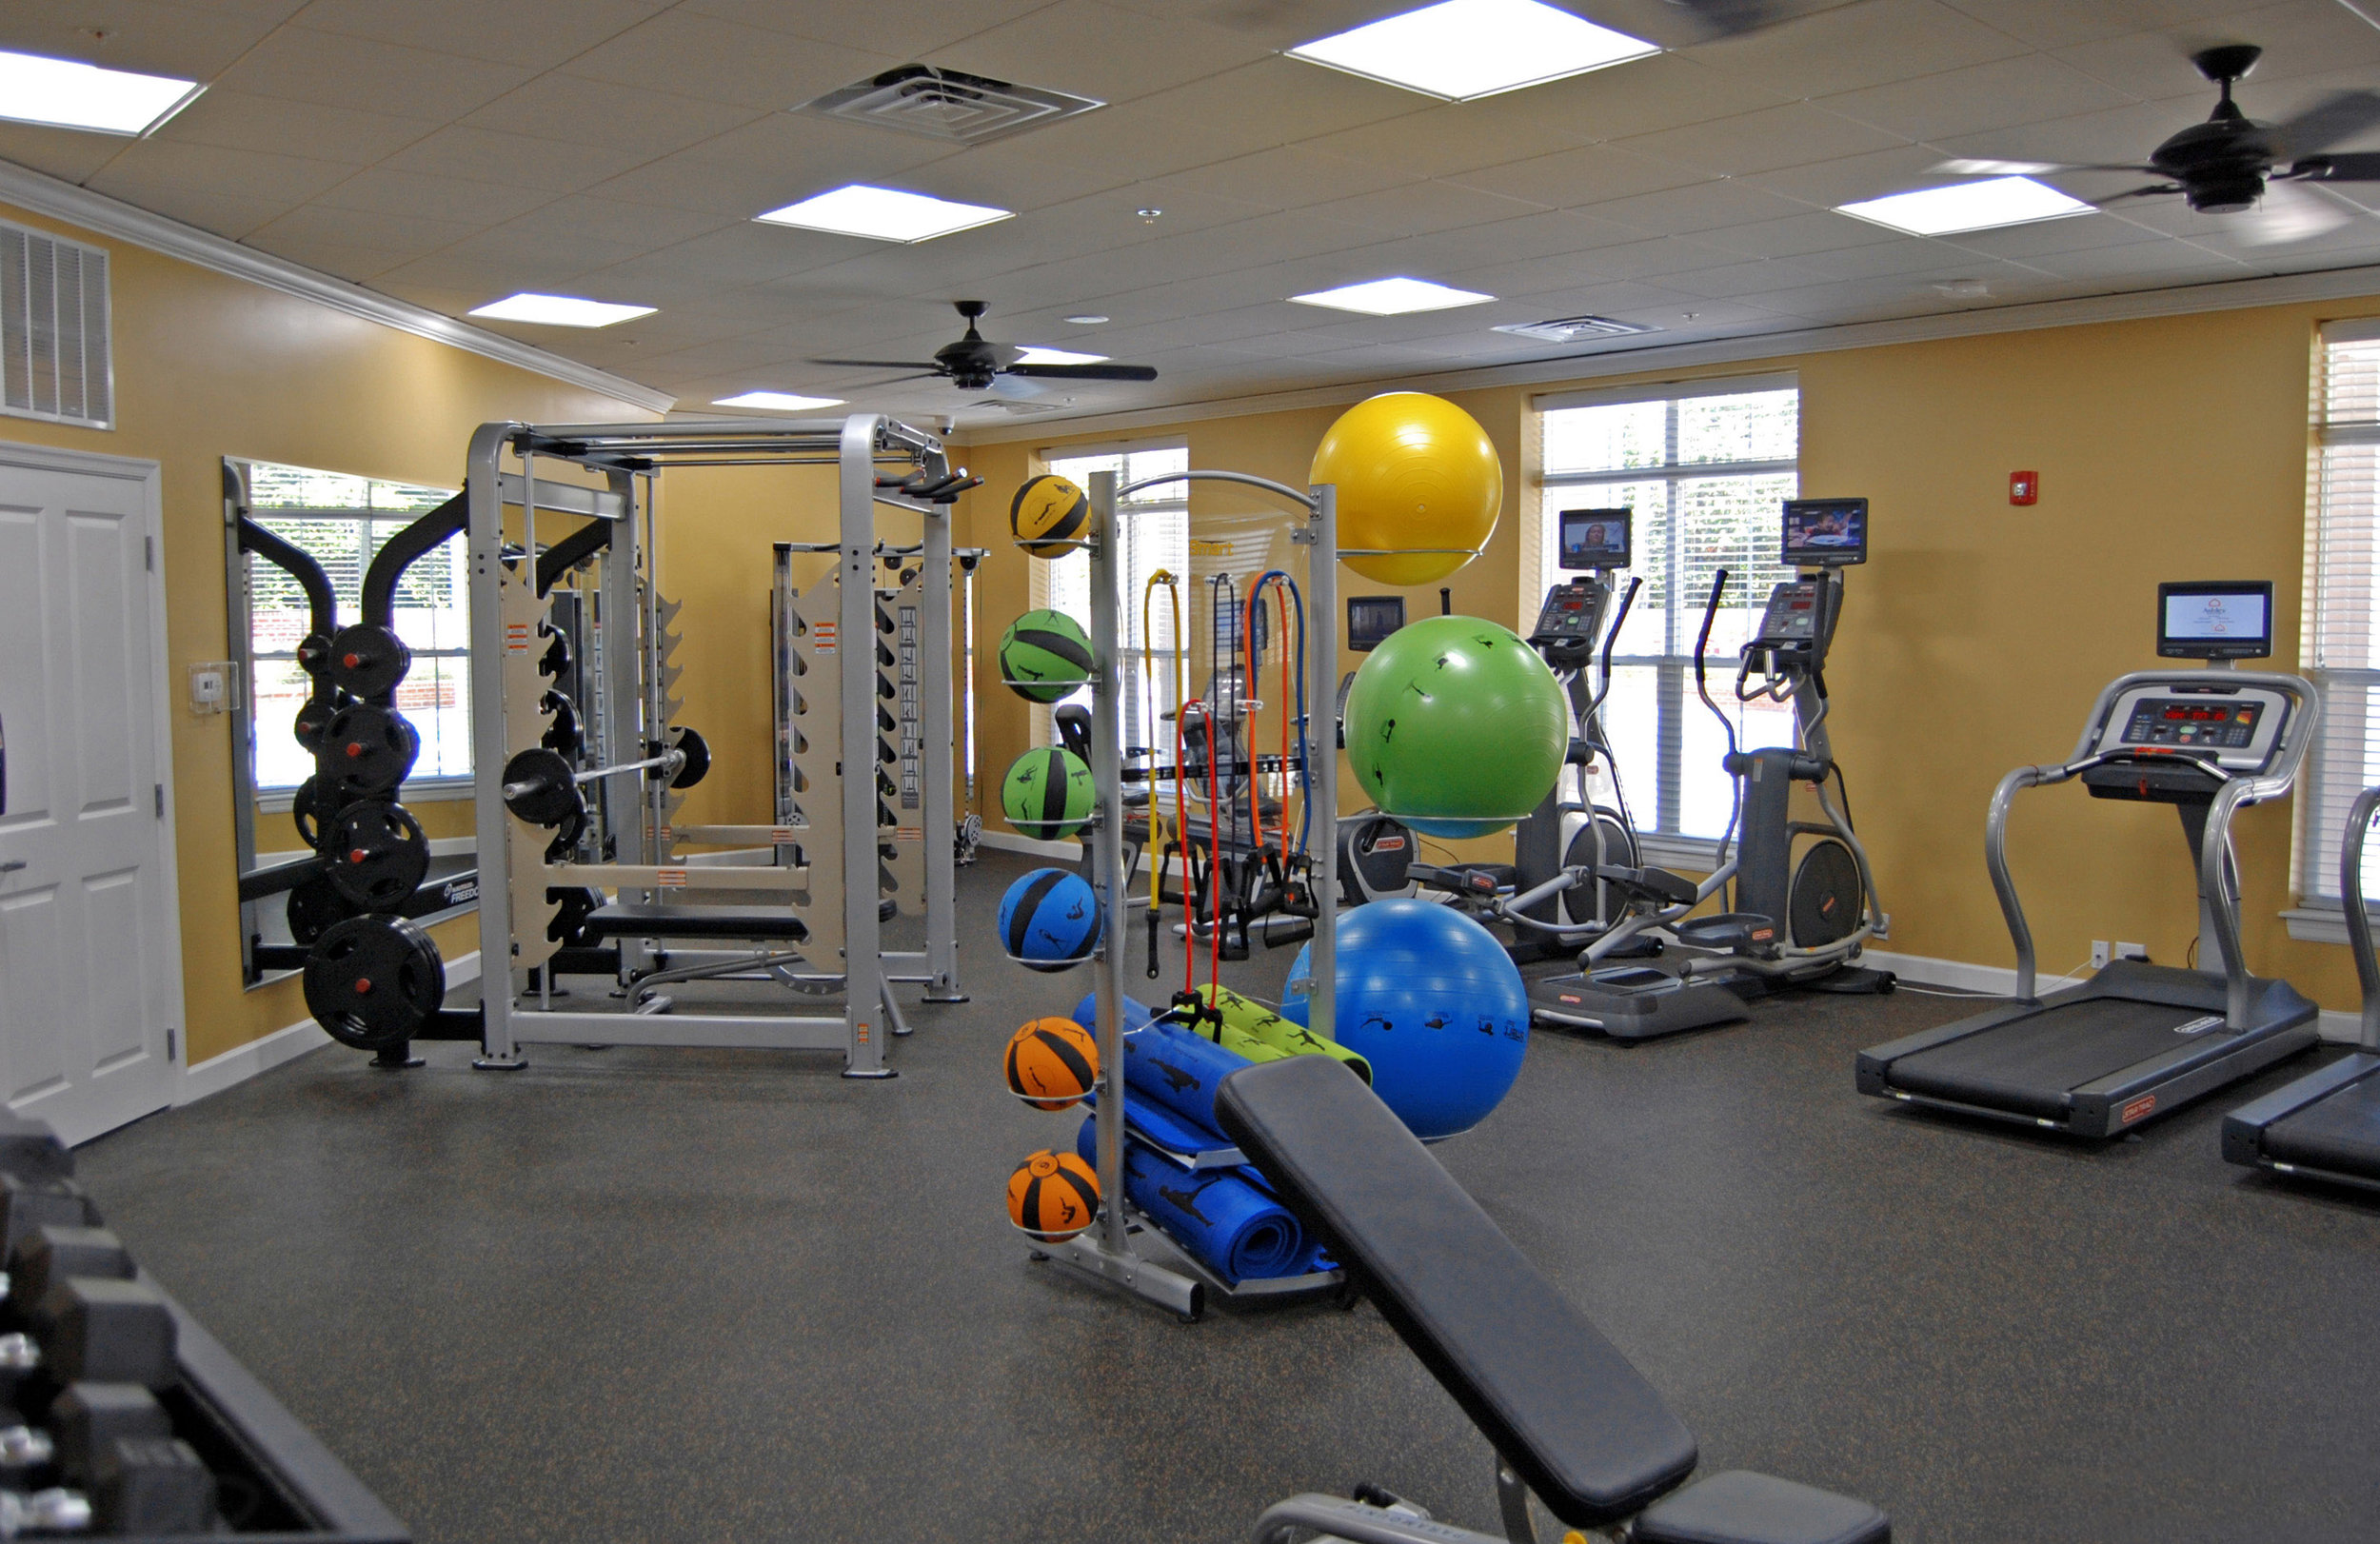 October 9, 2017  - View of Fitness Room